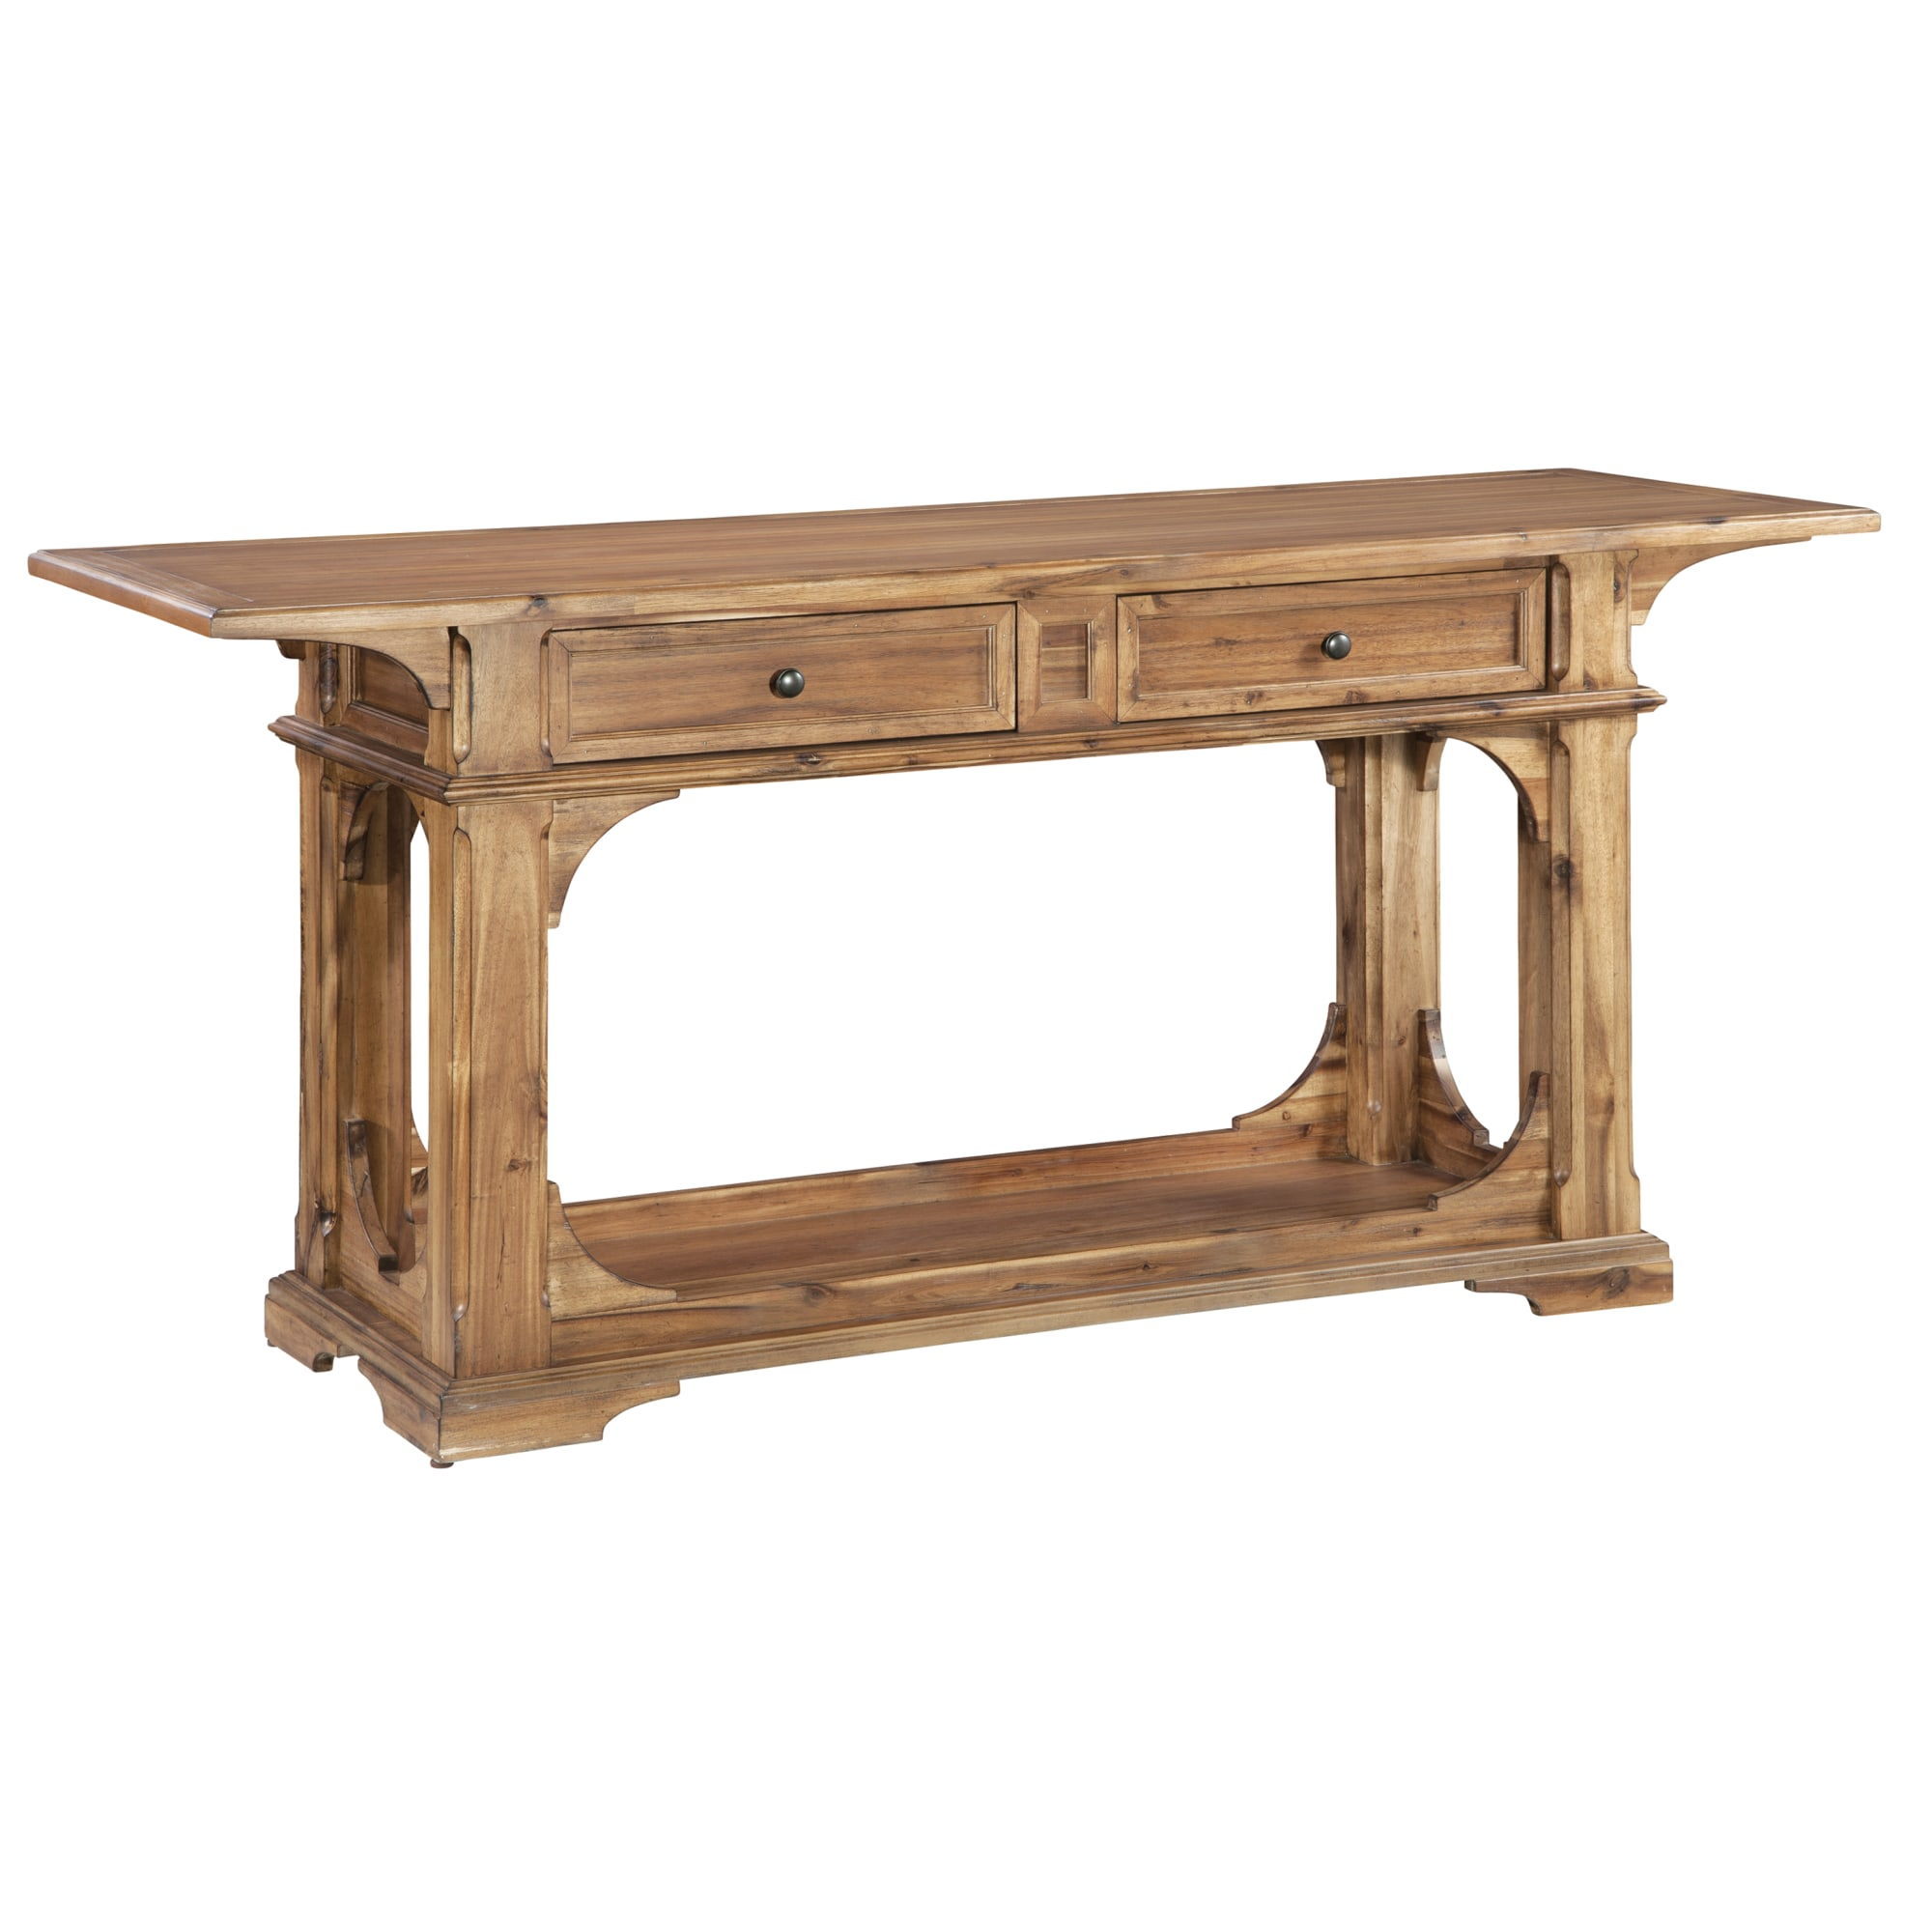 Image for 2-3310 Wellington Hall Sofa Table from Hekman Official Website